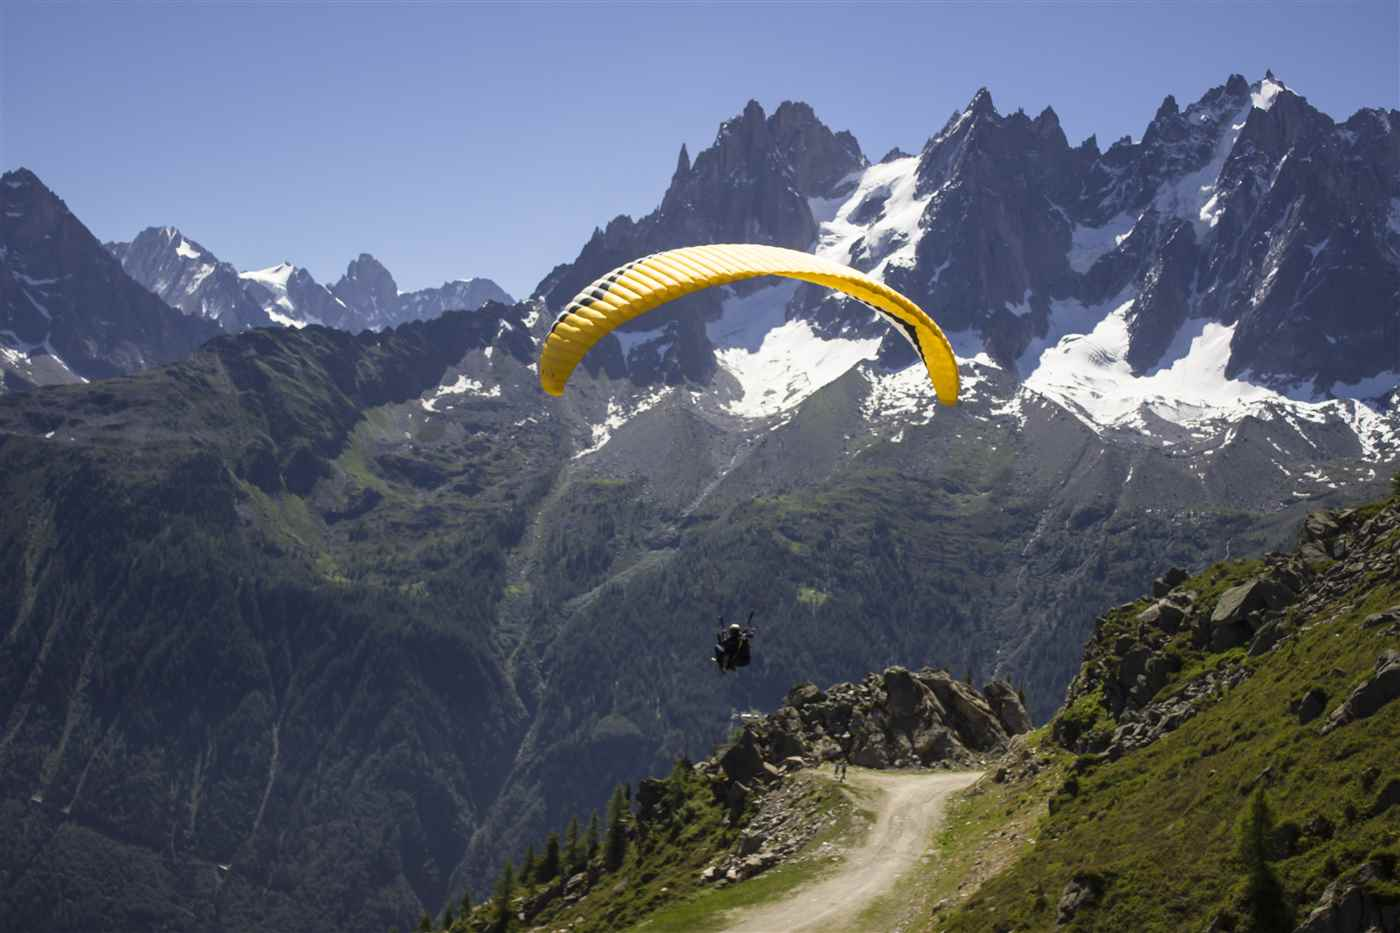 paragliding-mountains-sport-paraglider-163228